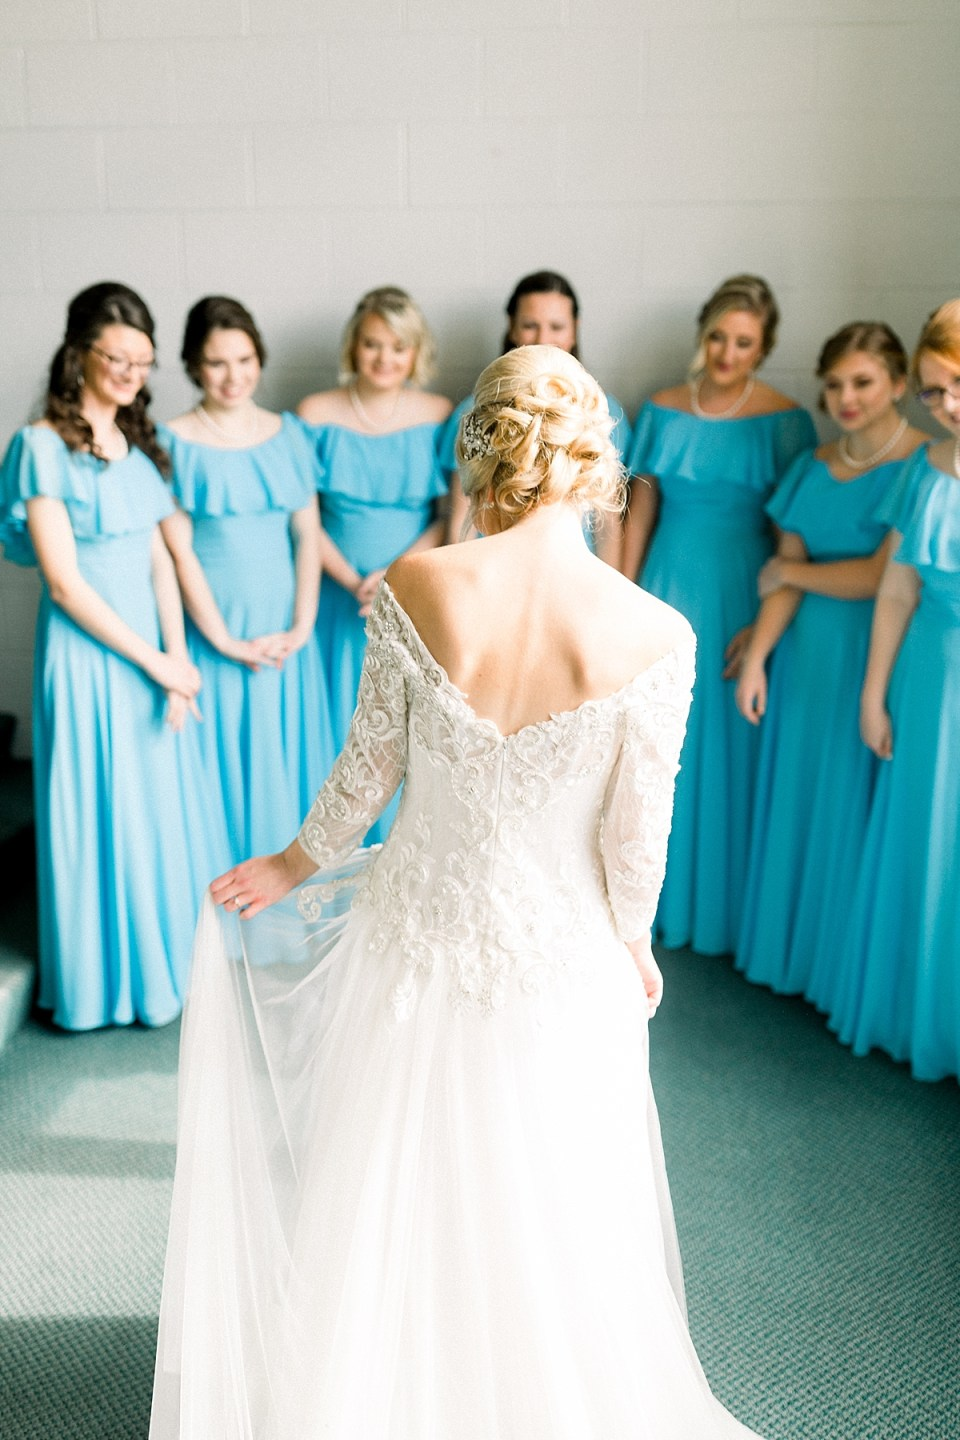 Arielle Peters Photography | Bridesmaids seeing the bride in her dress for the first time on fall wedding day.